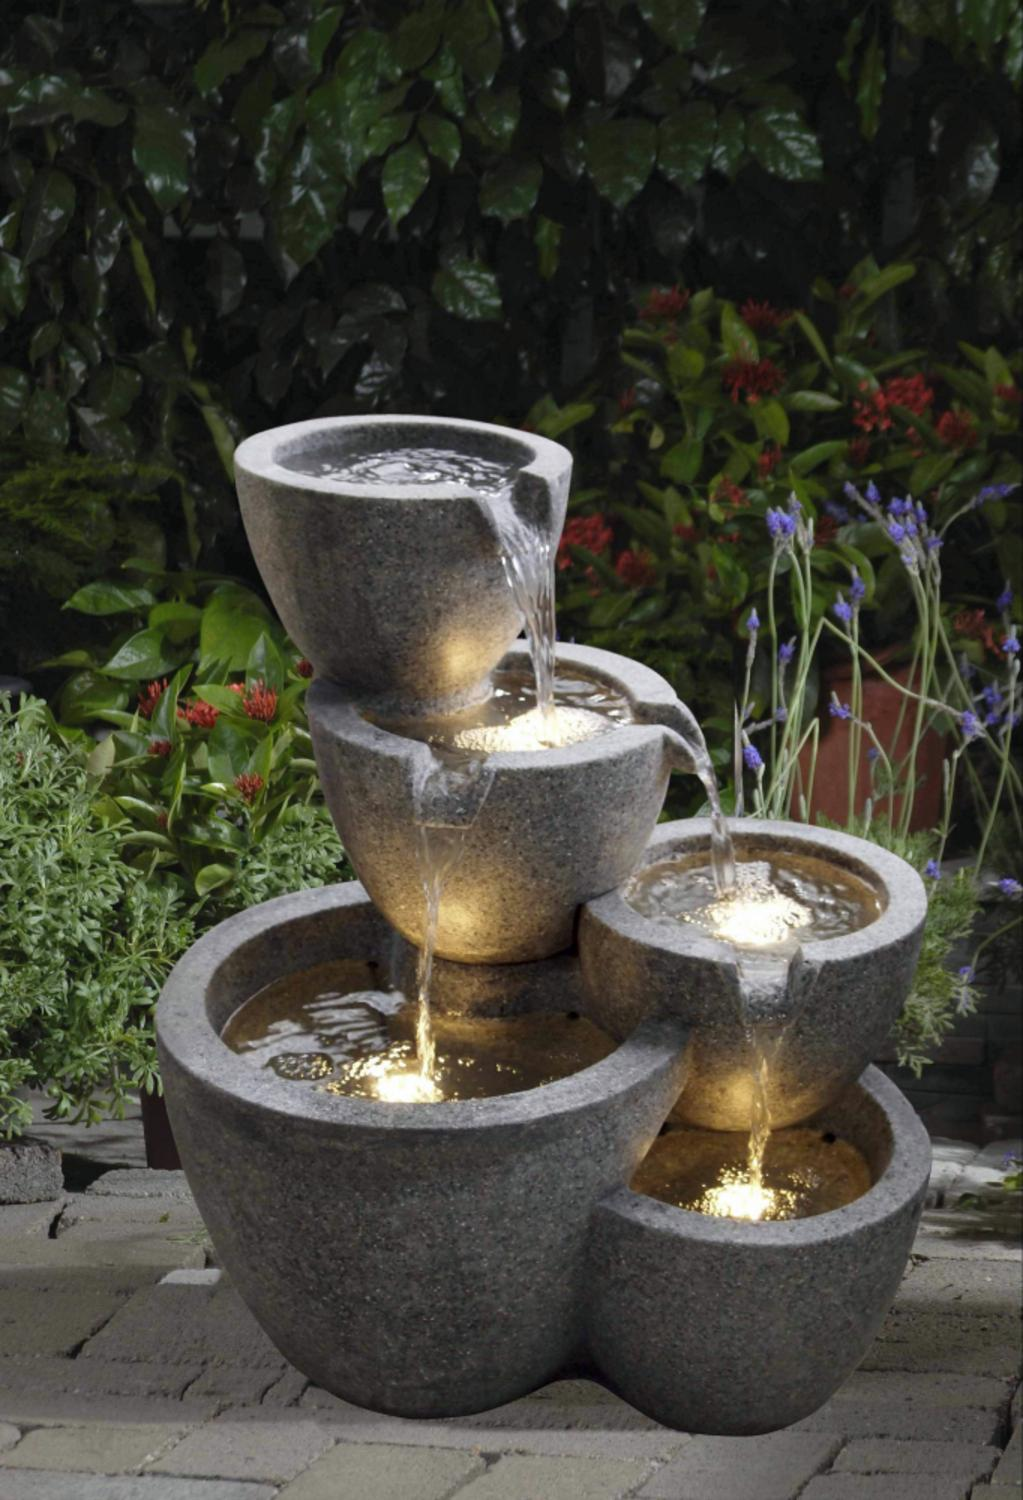 22 led lighted multi tiered stone pot outdoor patio garden water 22 led lighted multi tiered stone pot outdoor patio garden water fountain walmart workwithnaturefo